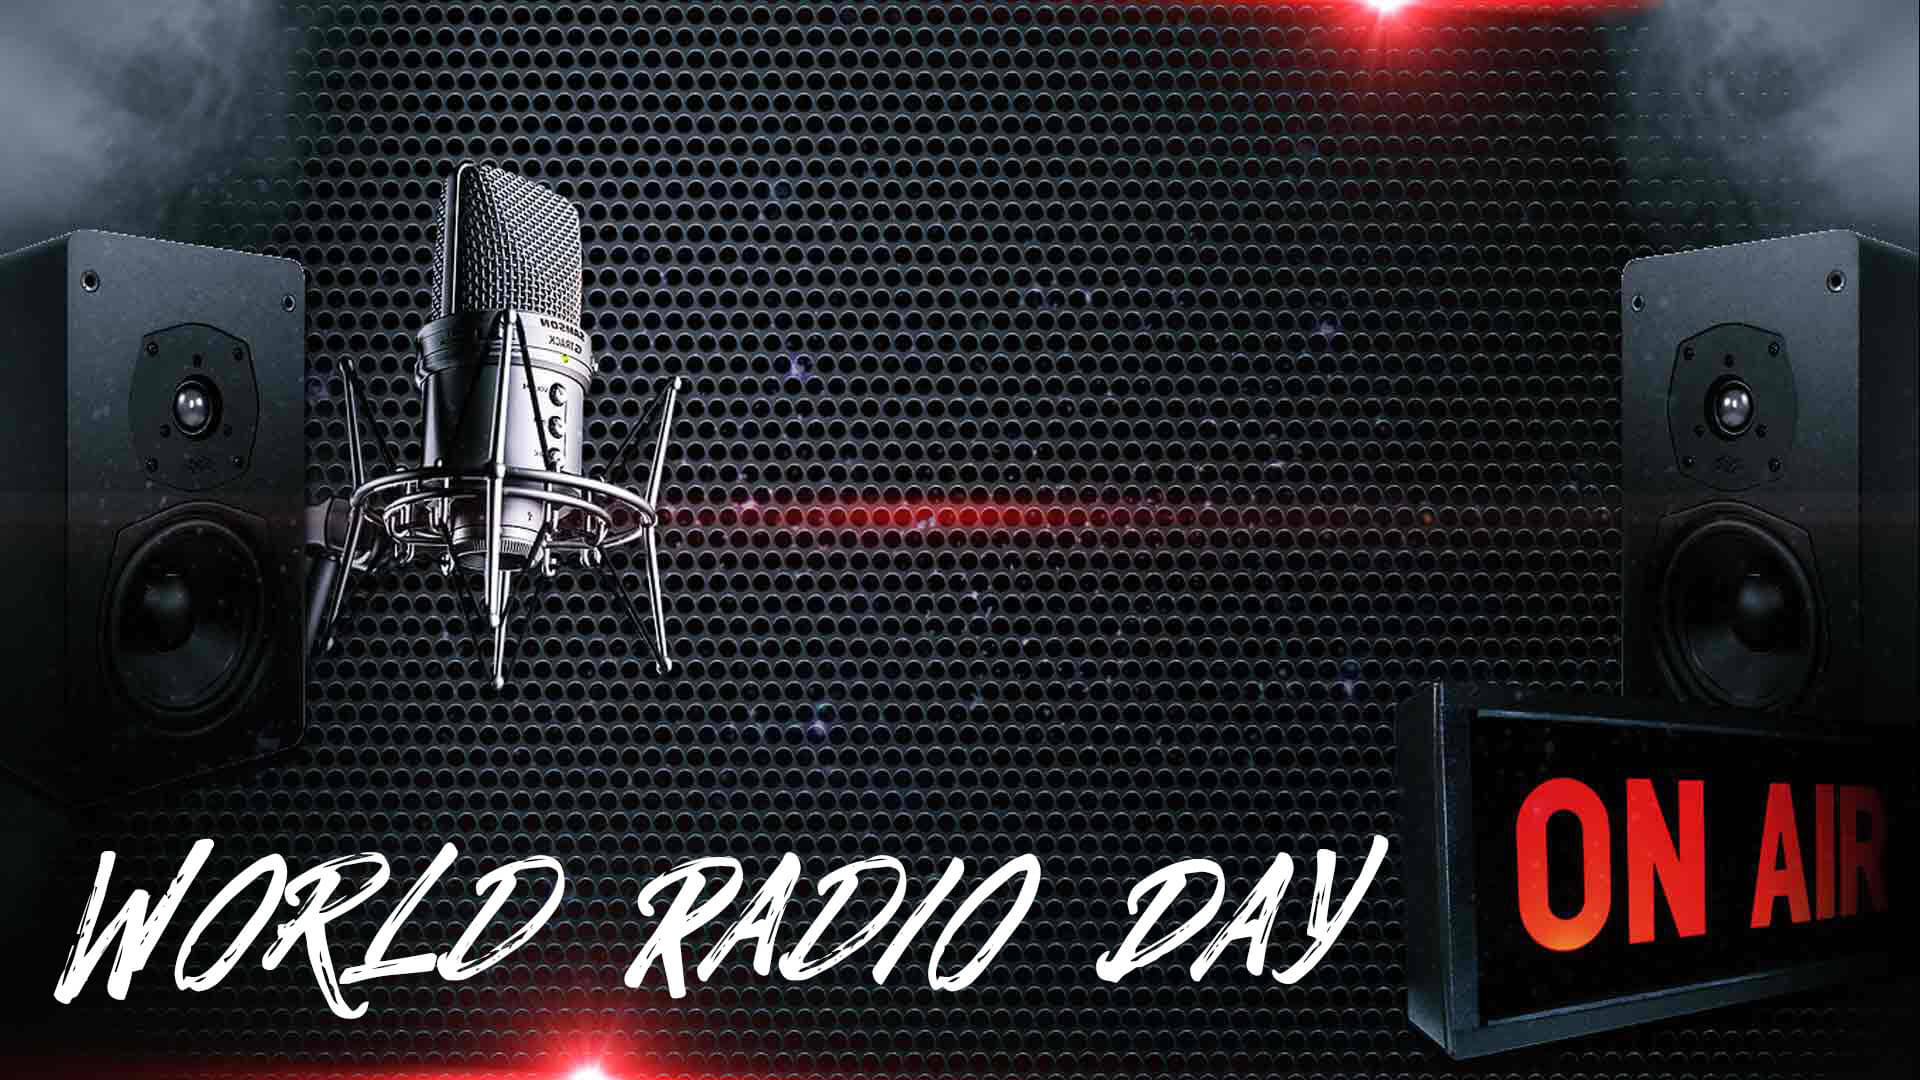 world radio day latest new pc background desktop hd wallpaper